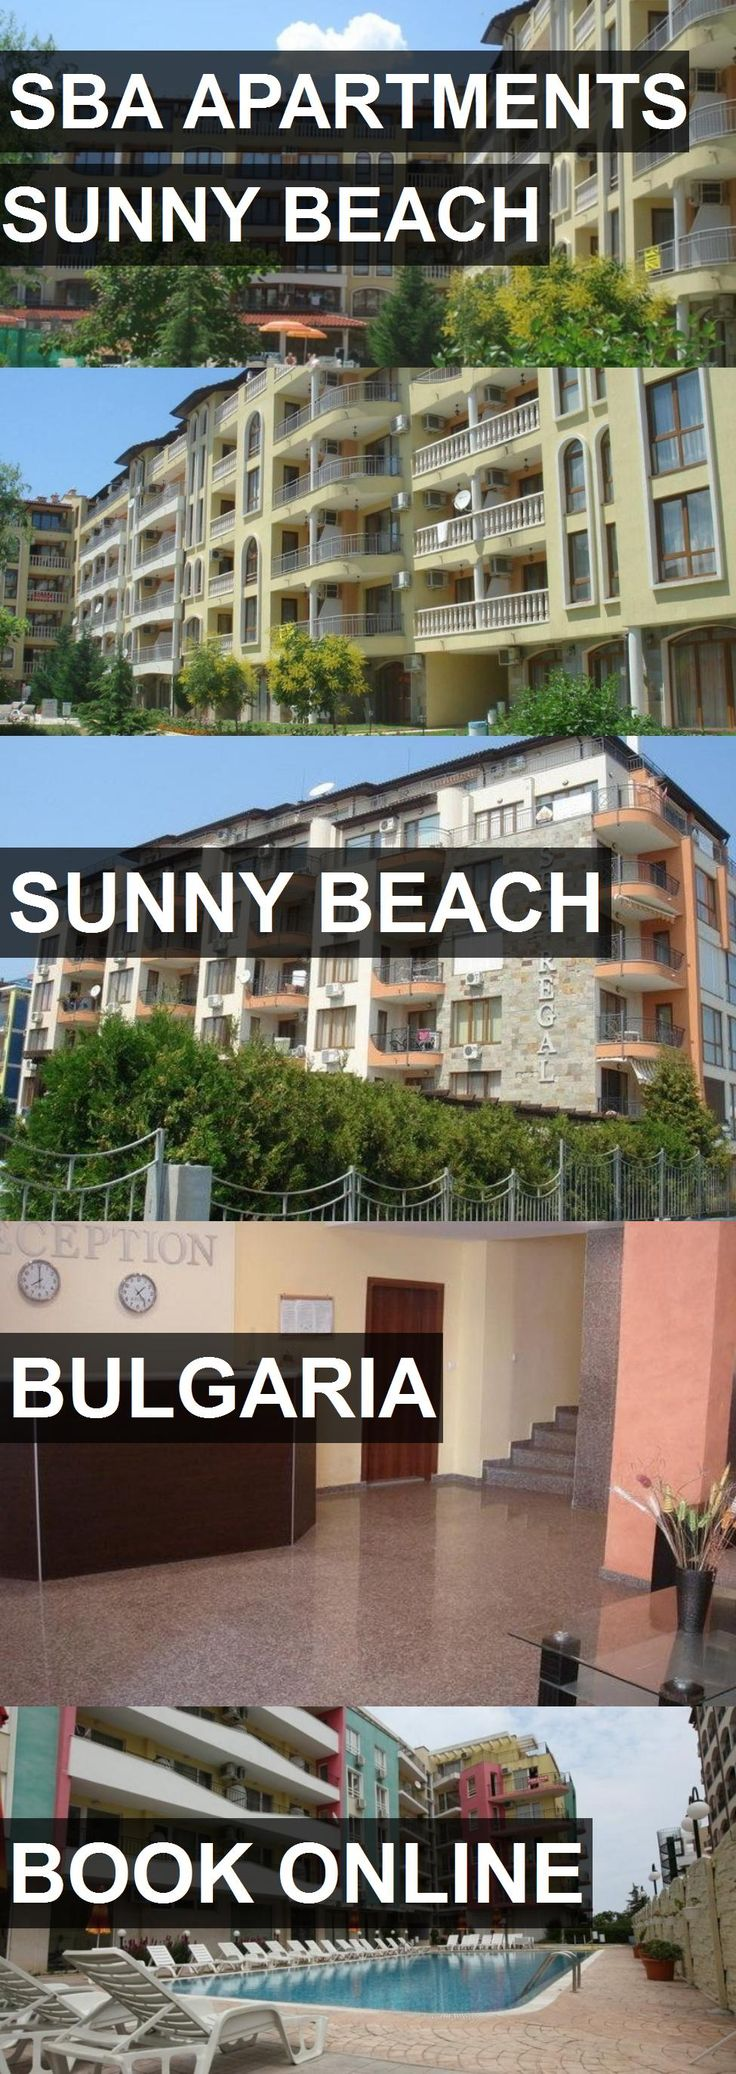 Hotel SBA APARTMENTS SUNNY BEACH in Sunny Beach, Bulgaria. For more information, photos, reviews and best prices please follow the link. #Bulgaria #SunnyBeach #SBAAPARTMENTSSUNNYBEACH #hotel #travel #vacation